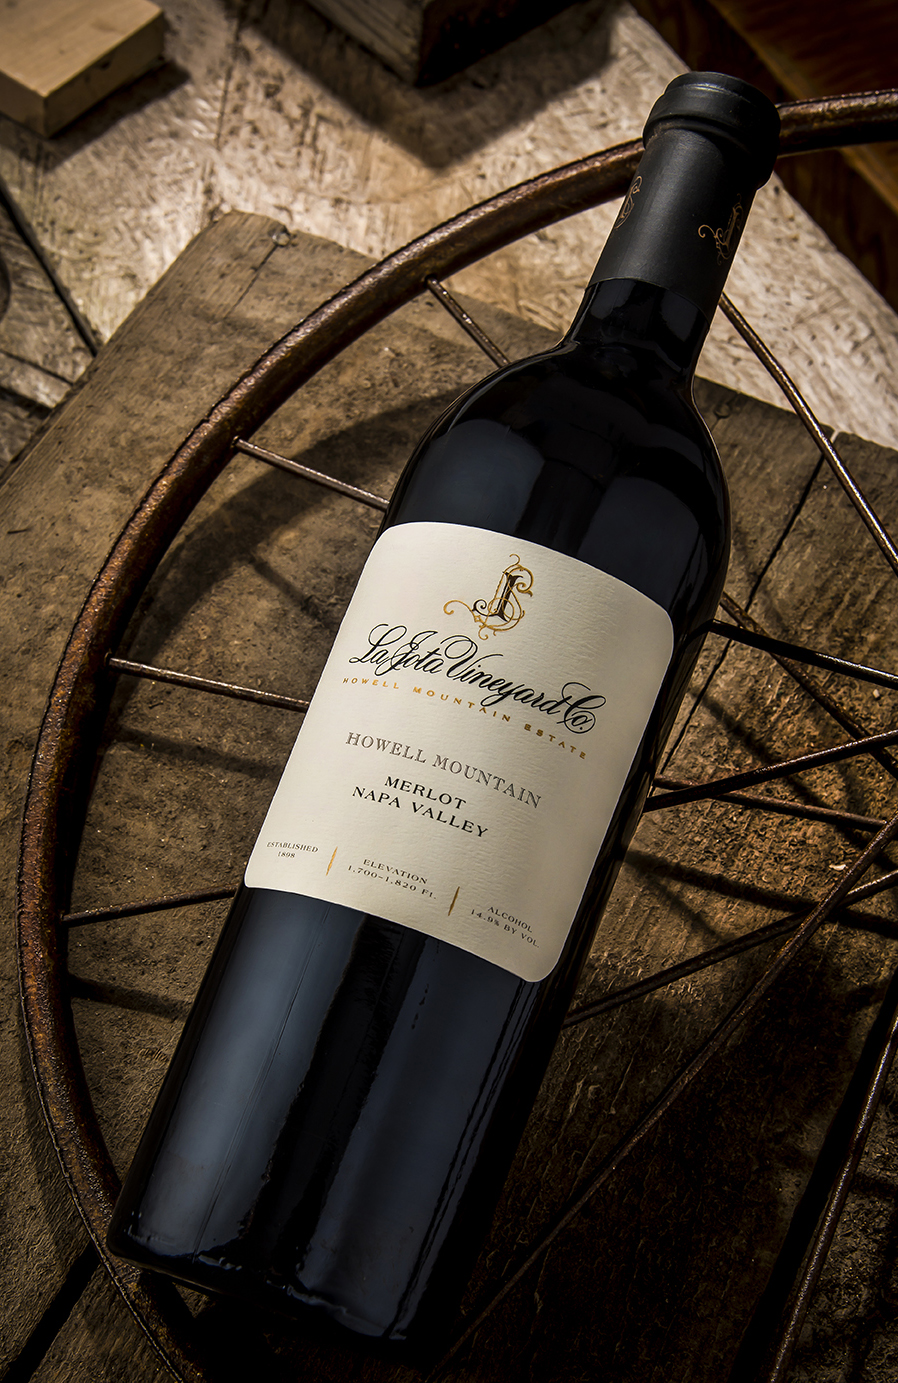 La Jota Howell Mountain Merlot